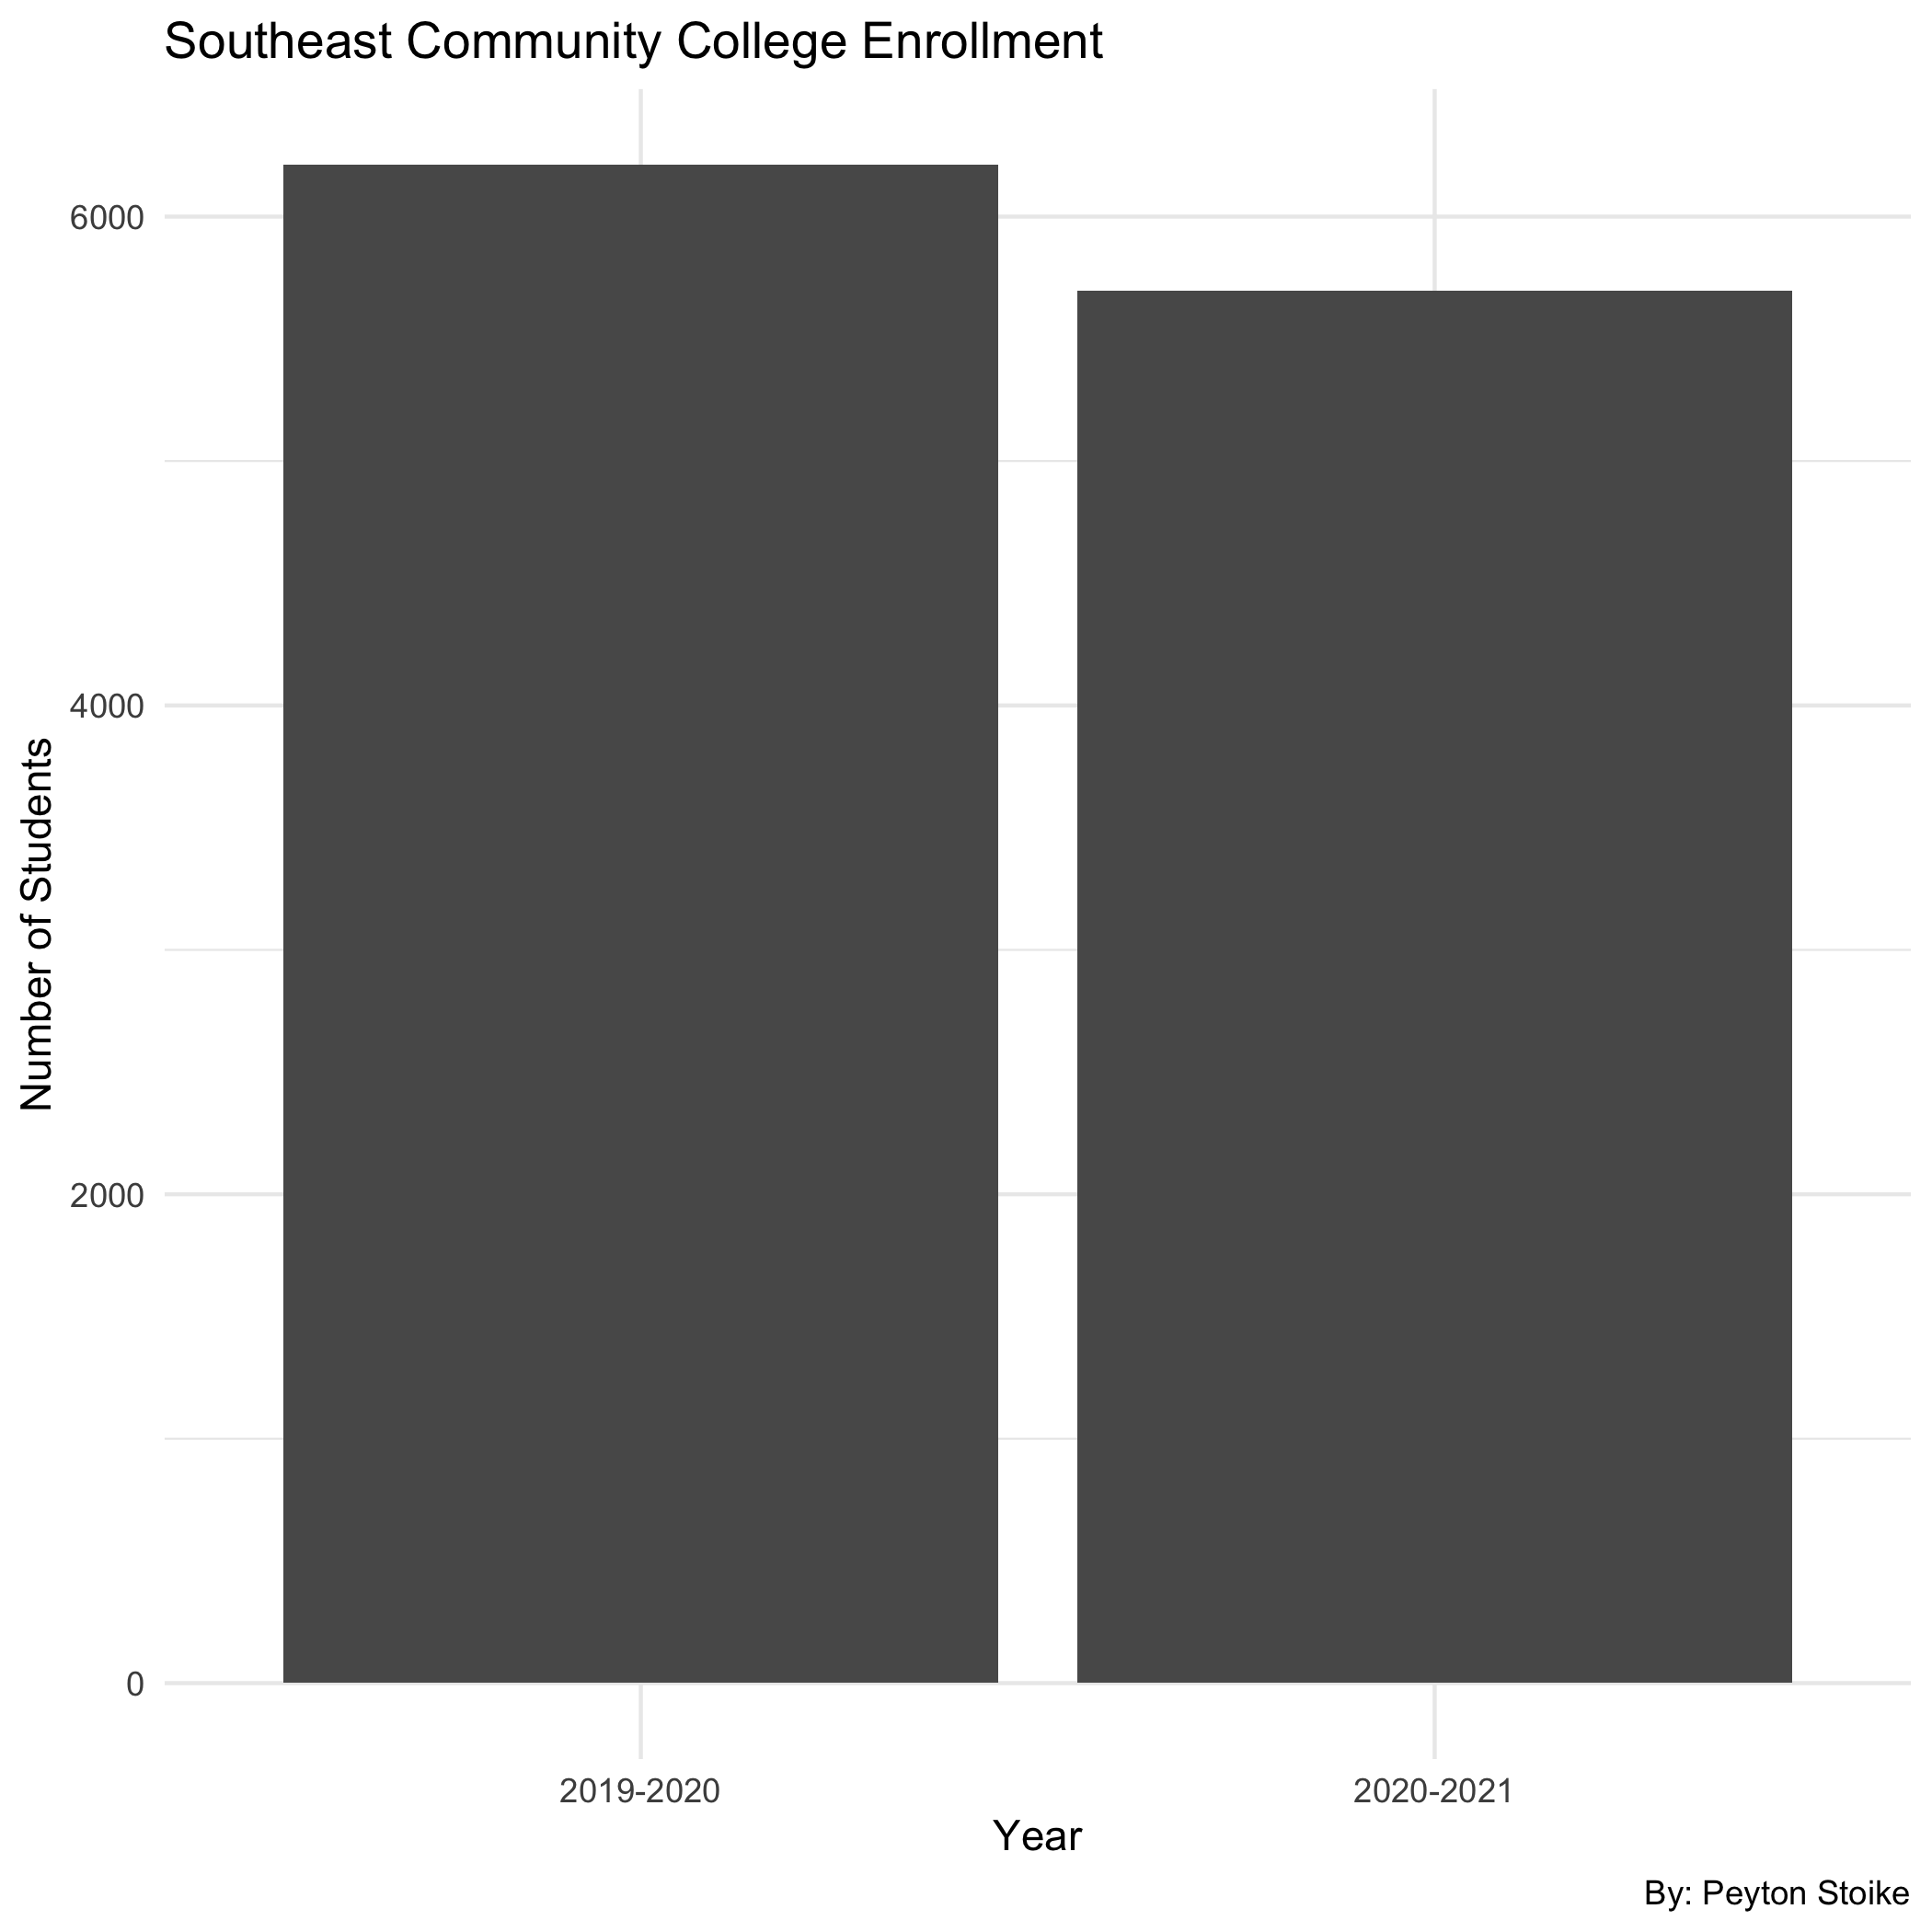 Even through a global pandemic, Southeast Community College maintained similar enrollment numbers for full time students. SCC lost about a thousand students. This was the biggest change among the colleges interviewed.There is no true way to know if change in number of students between the 2019-2020 and 2020-2021 school year is due to the global pandemic.